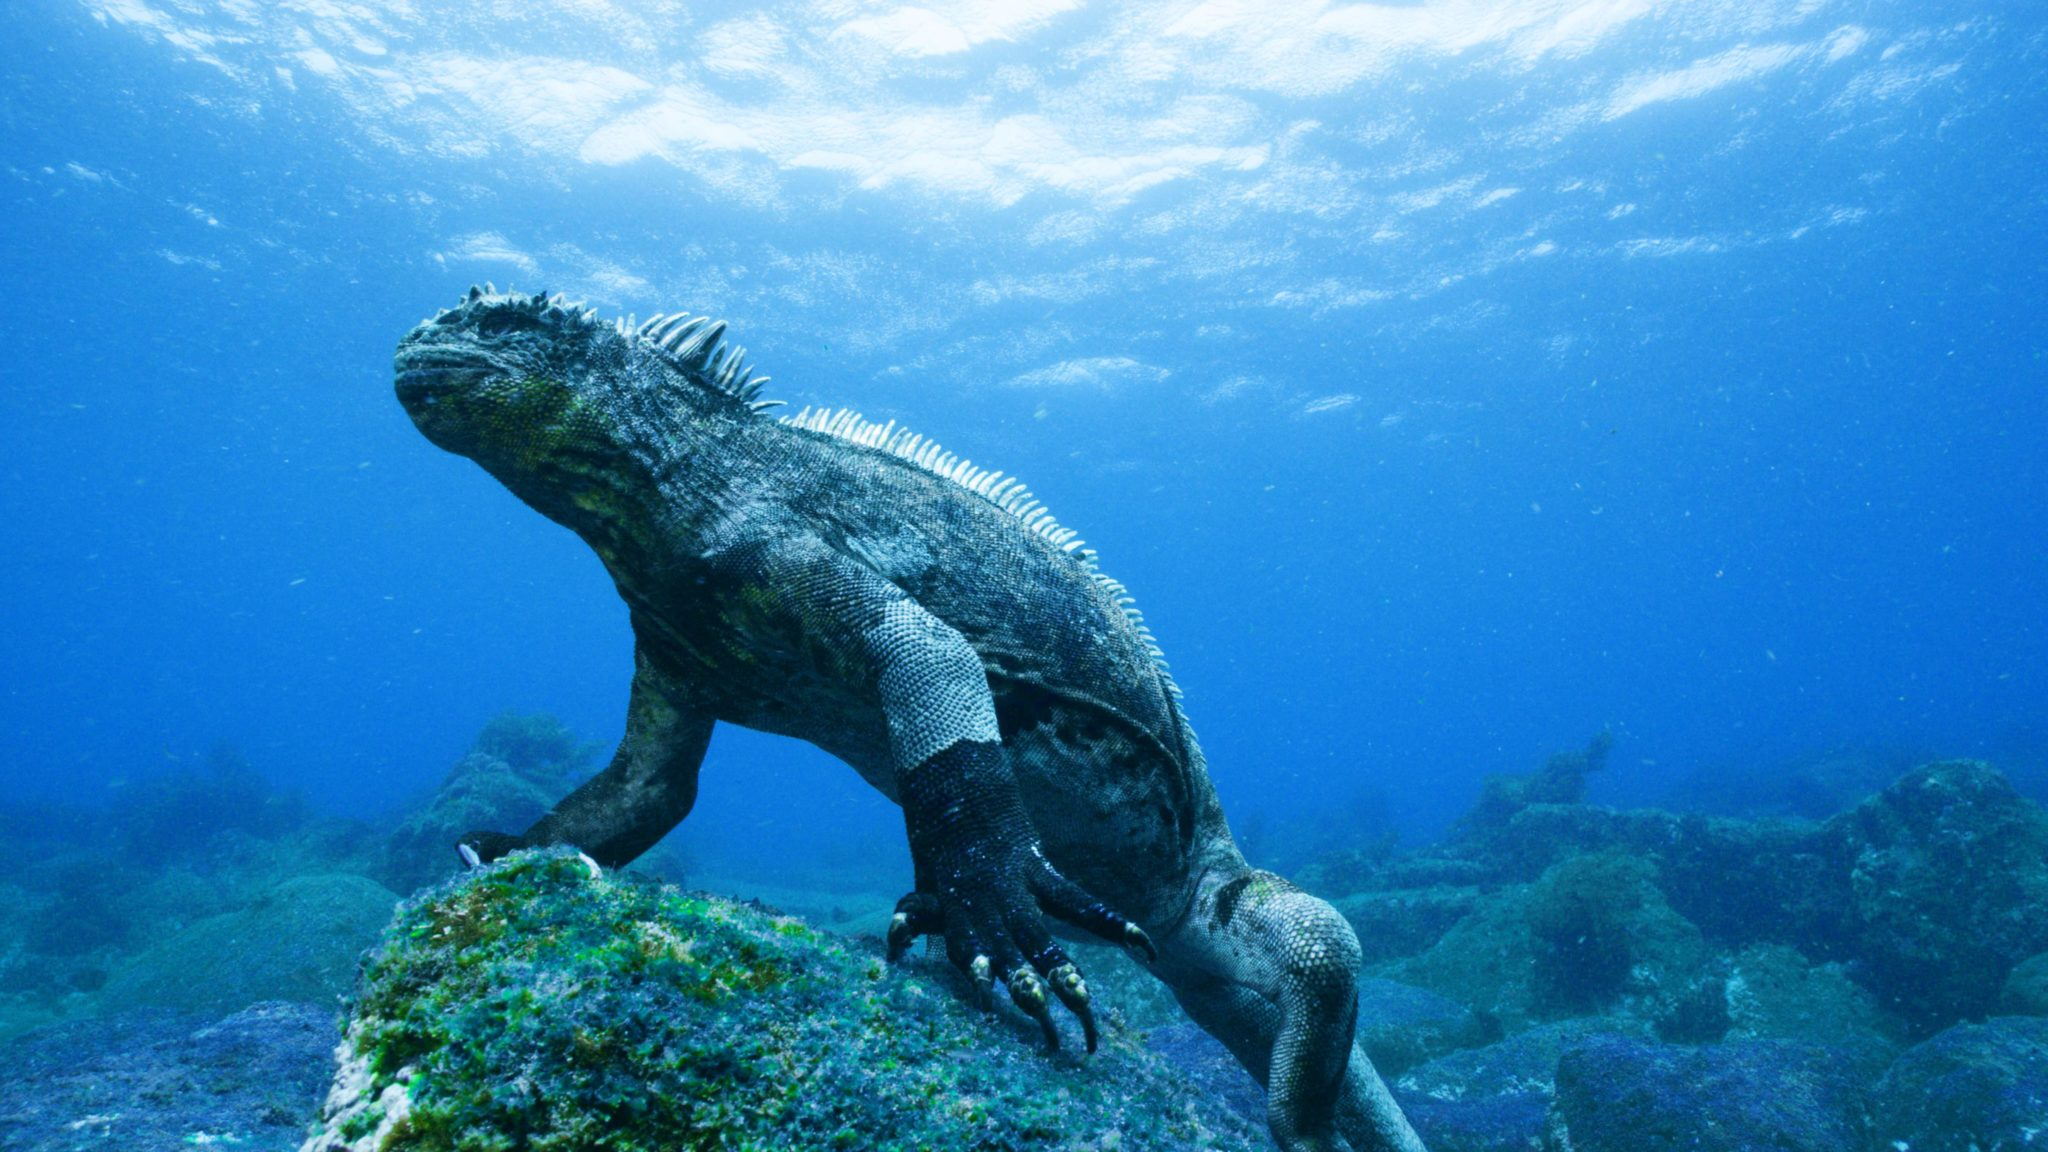 Only the largest marine iguanas forage for algae in the sea – they can grow to 1,5m long, but the average individual is about half that length